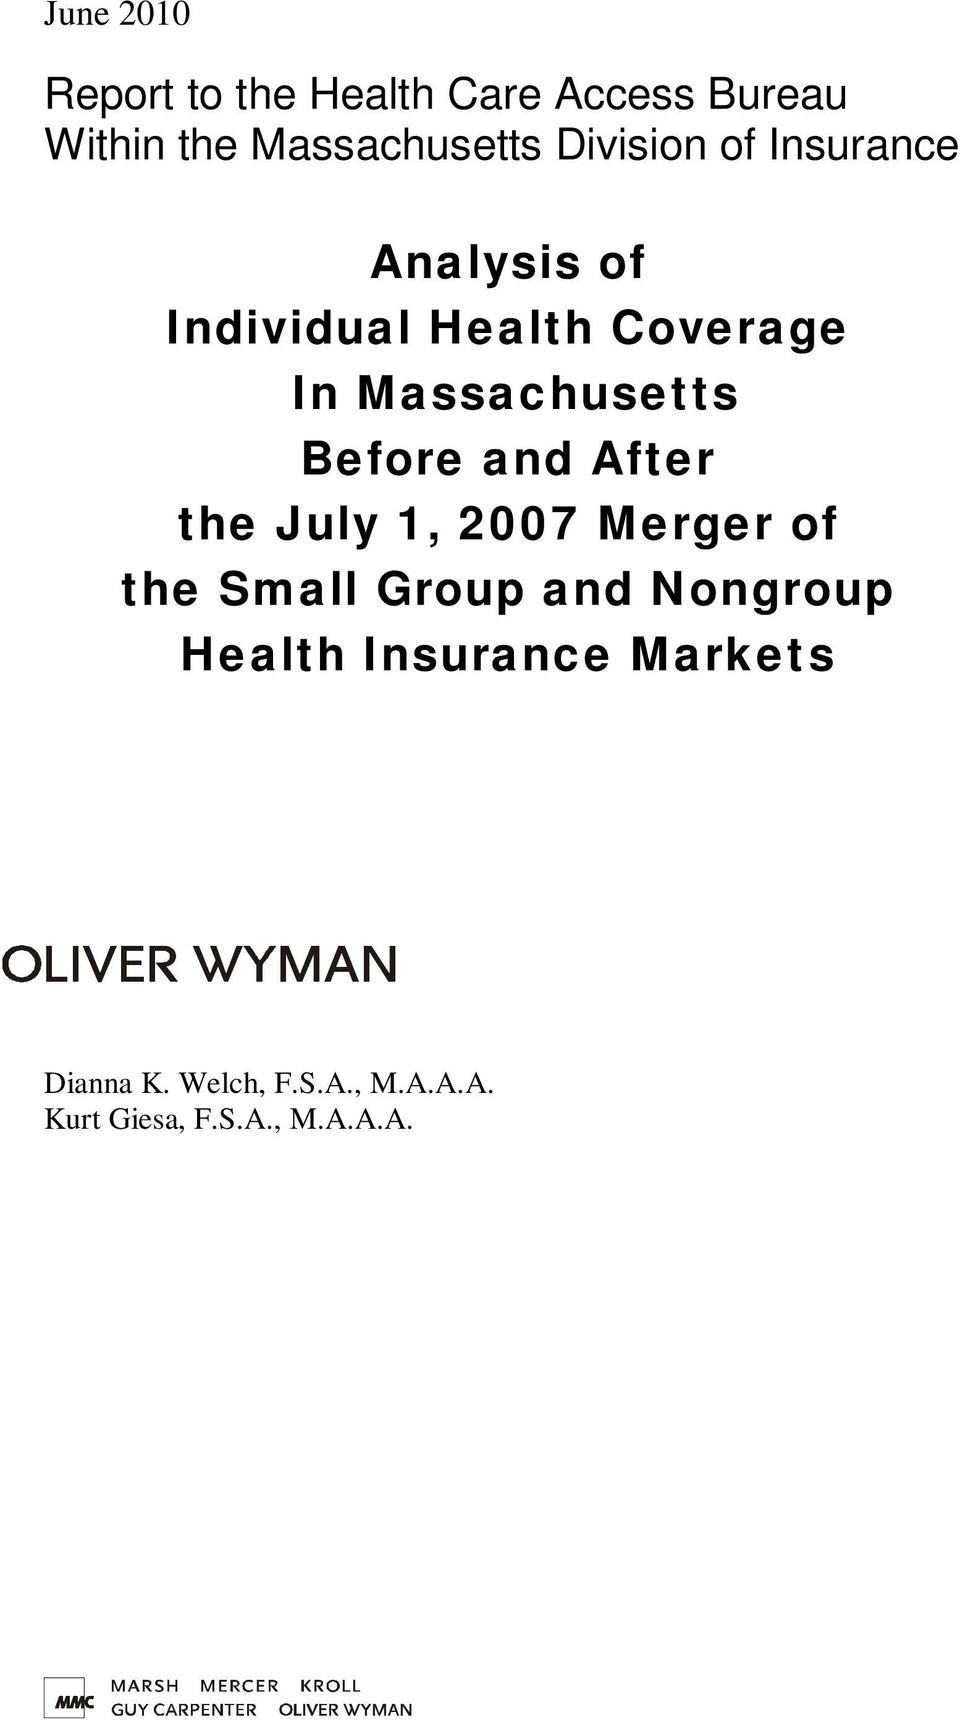 Before and After the July 1, 2007 Merger of the Small Group and Nongroup